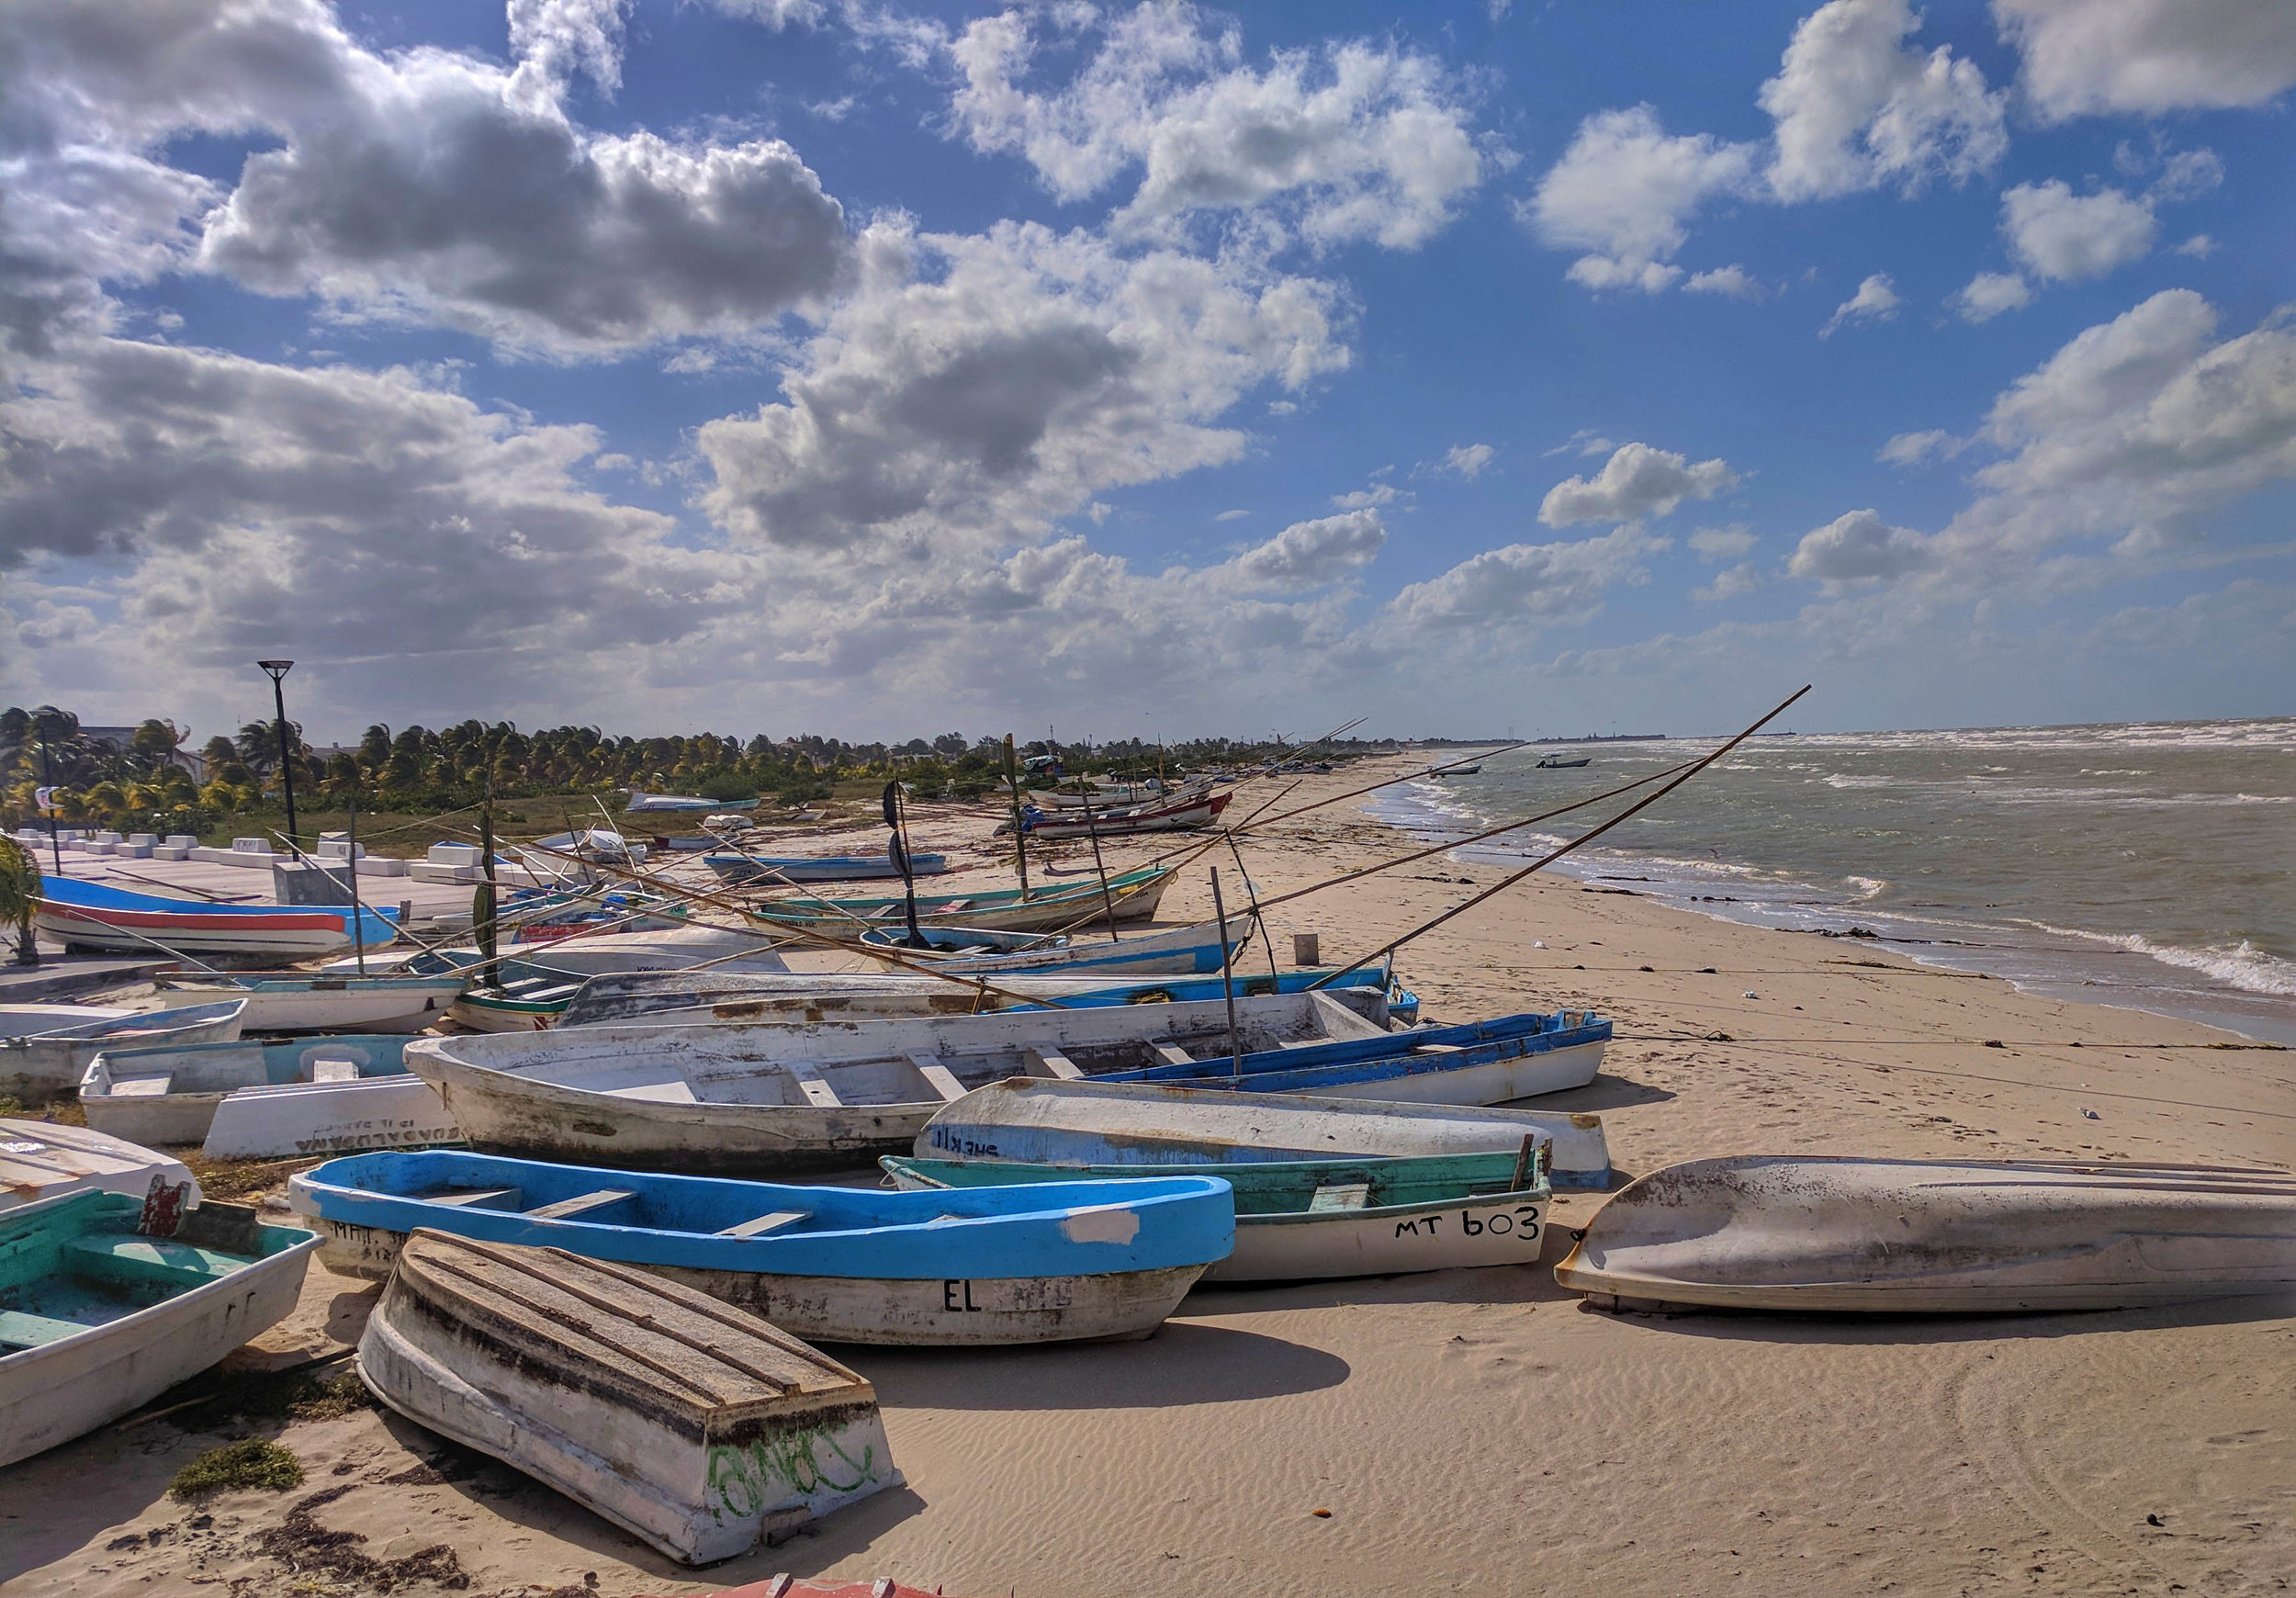 A day trip to the coast at Progreso